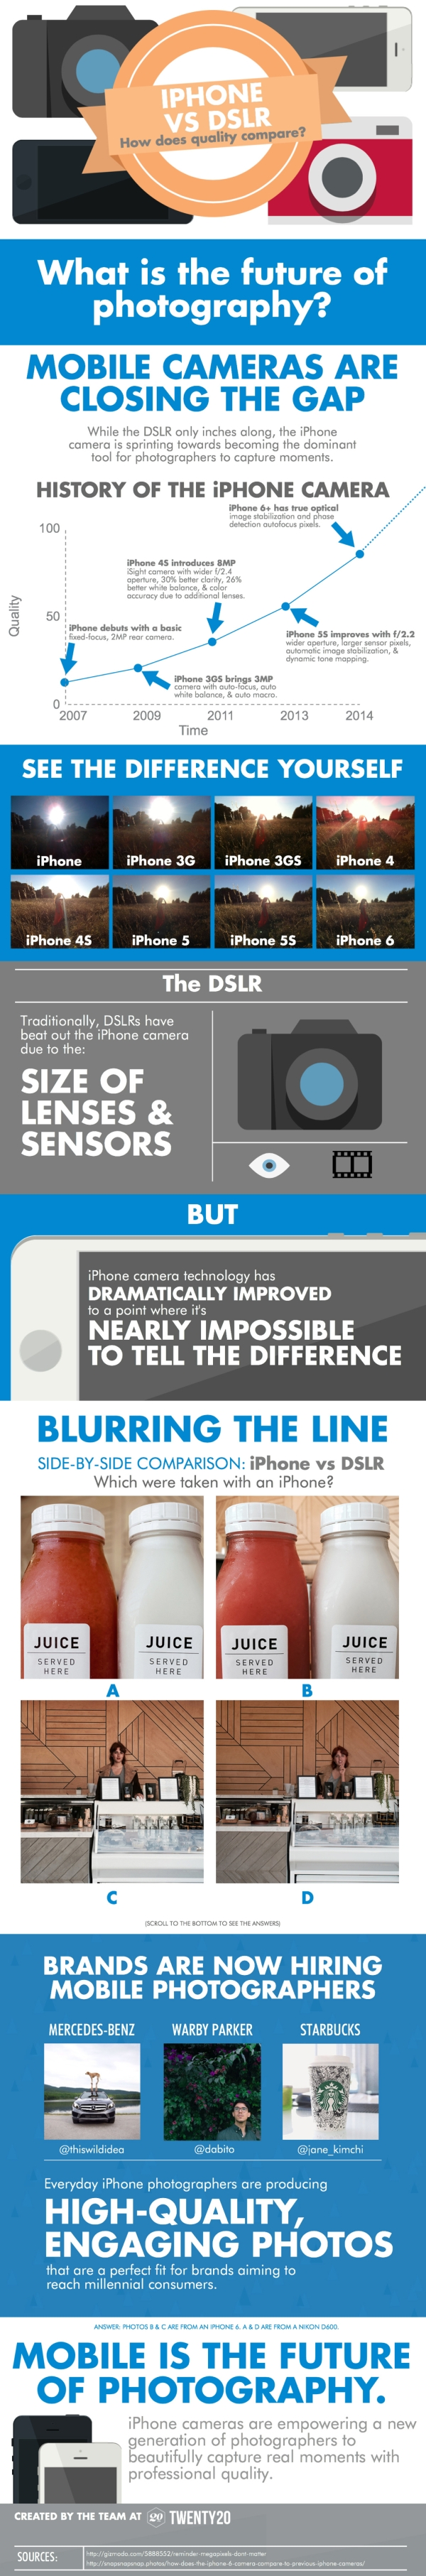 iPhone-vs-DSLR-infographic